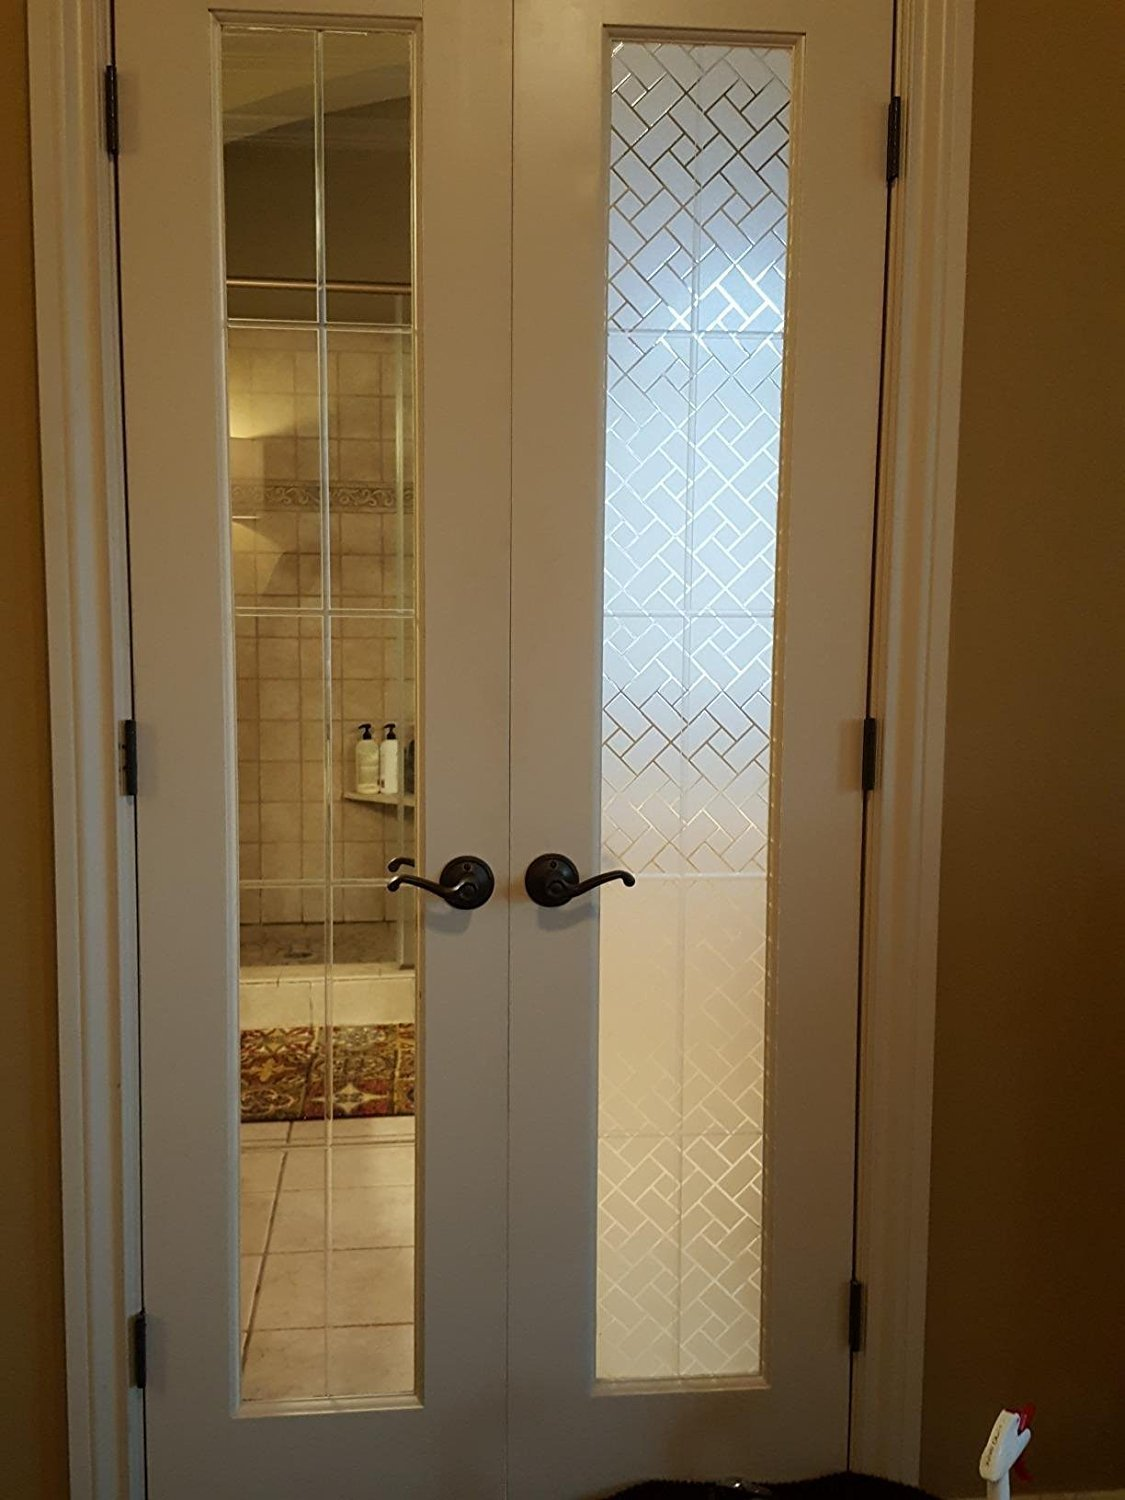 Peralng PVC 18*79\  door privacy window film privacy coverin\u2026  sc 1 st  Walmart.com & Peralng PVC 18*79\